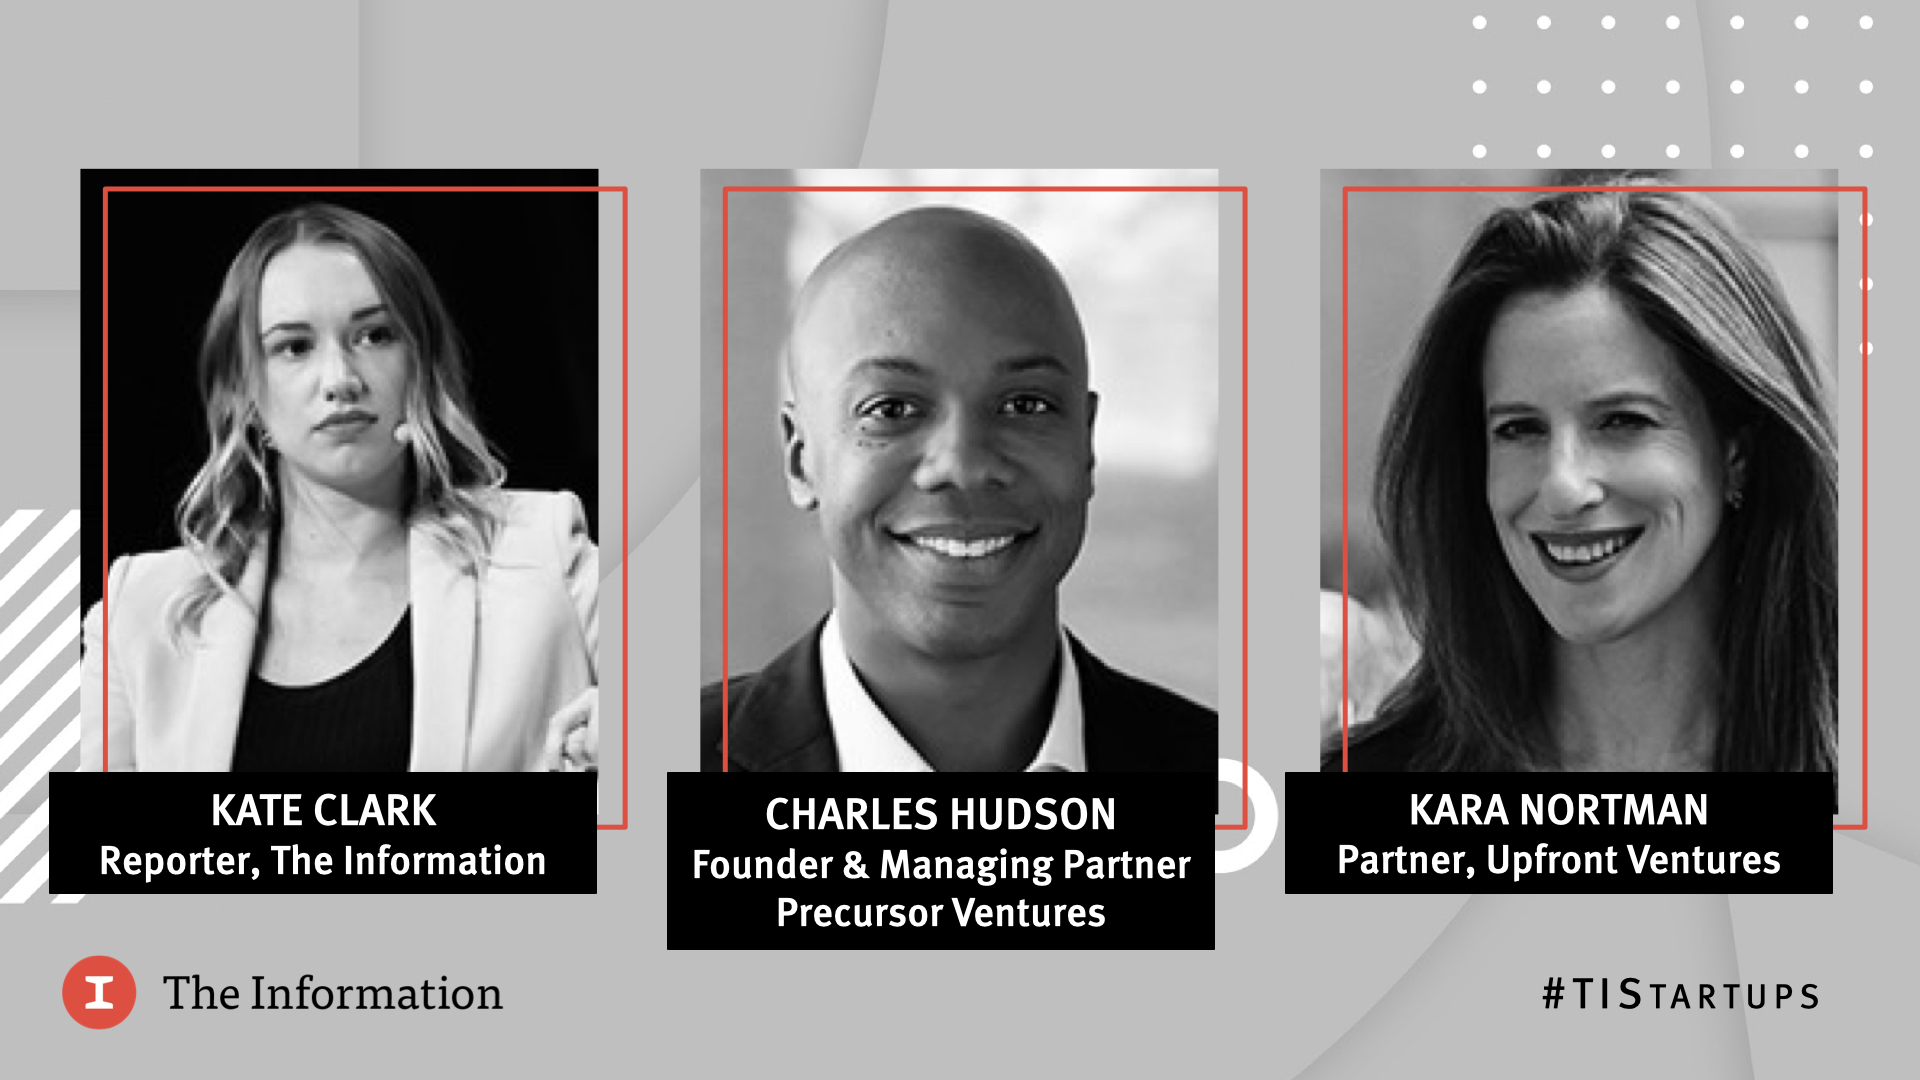 Future of Startups 2021 - Charles Hudson, Founder & Managing Partner, Precursor Ventures & Kara Nortman, Partner, Upfront Ventures in conversation with Kate Clark, Reporter, The Information